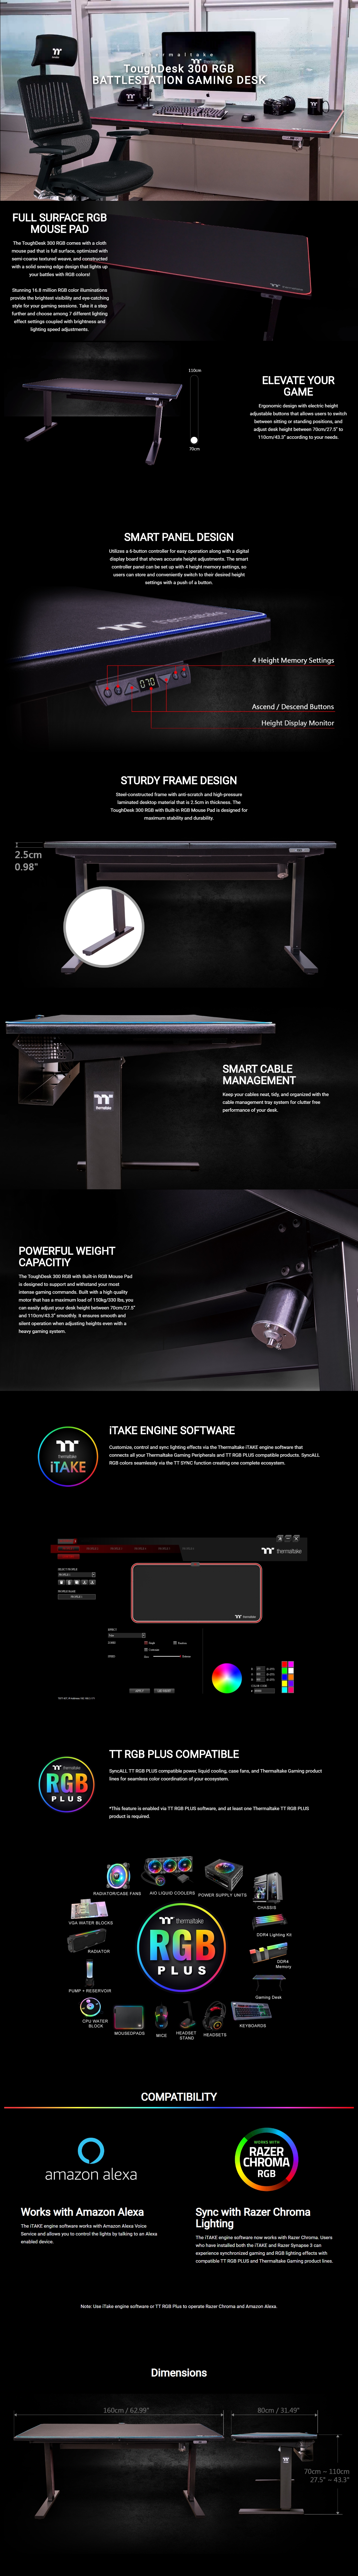 A large marketing image providing additional information about the product Thermaltake ToughDesk 300 RGB Battlestation Gaming Desk - Additional alt info not provided